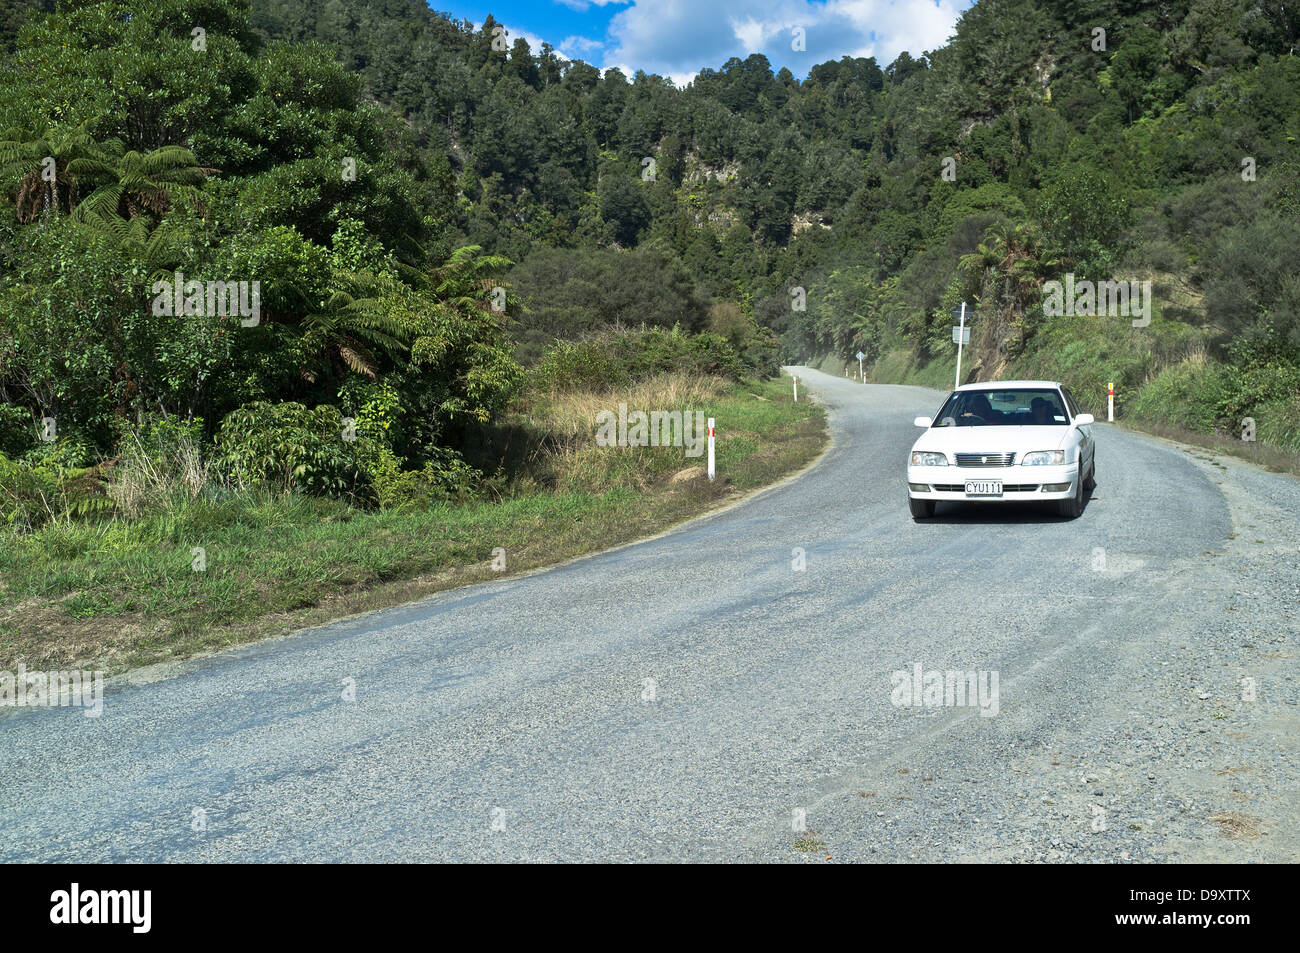 dh Forgotten World Highway OHURA ROAD NEW ZEALAND Motorcar on SH43 state highway road - Stock Image